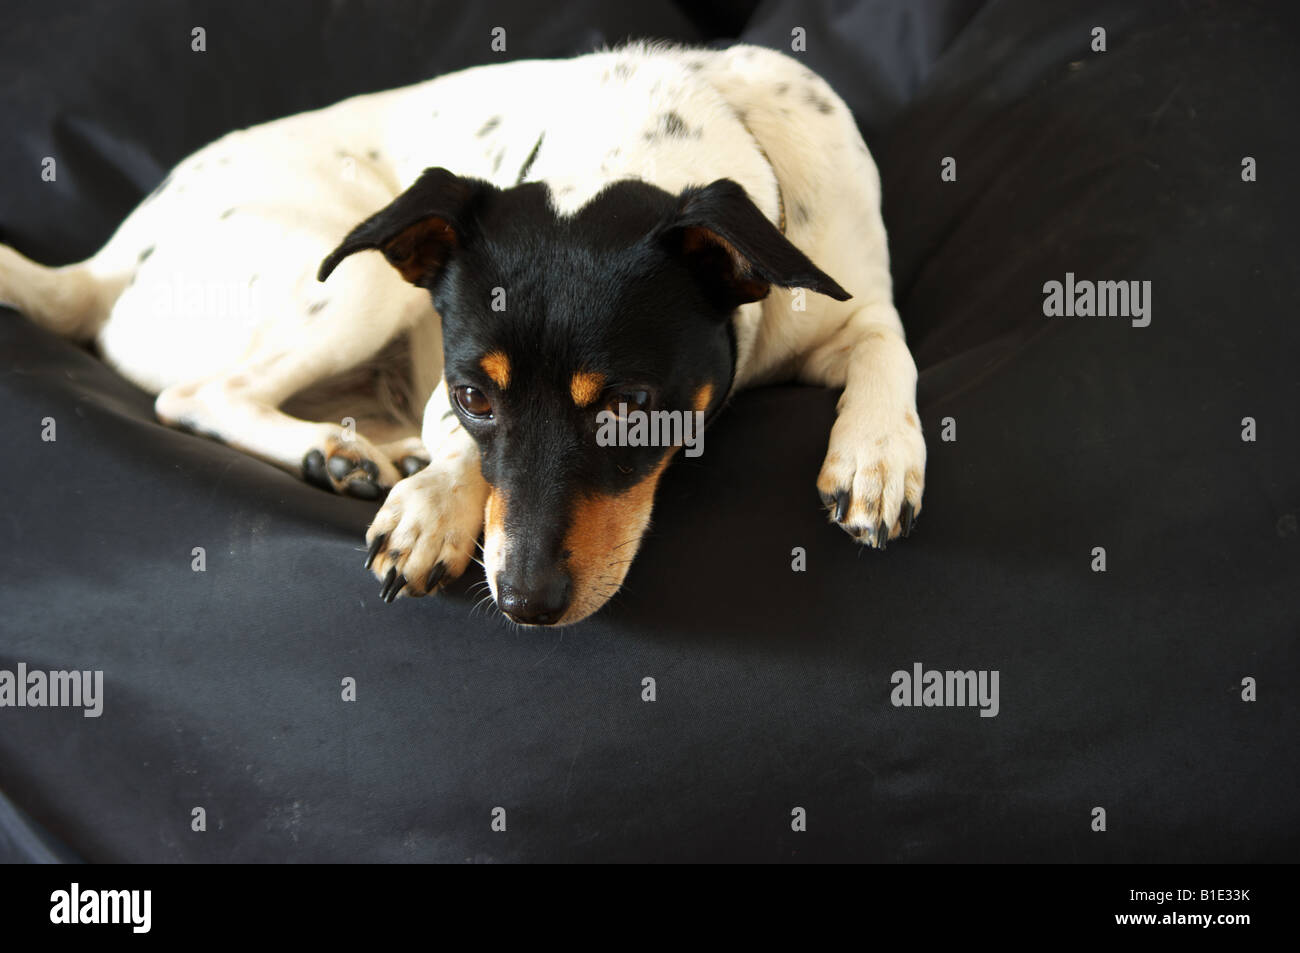 A Jack Russell called Macy lying on a Fatboy bean bag - Stock Image